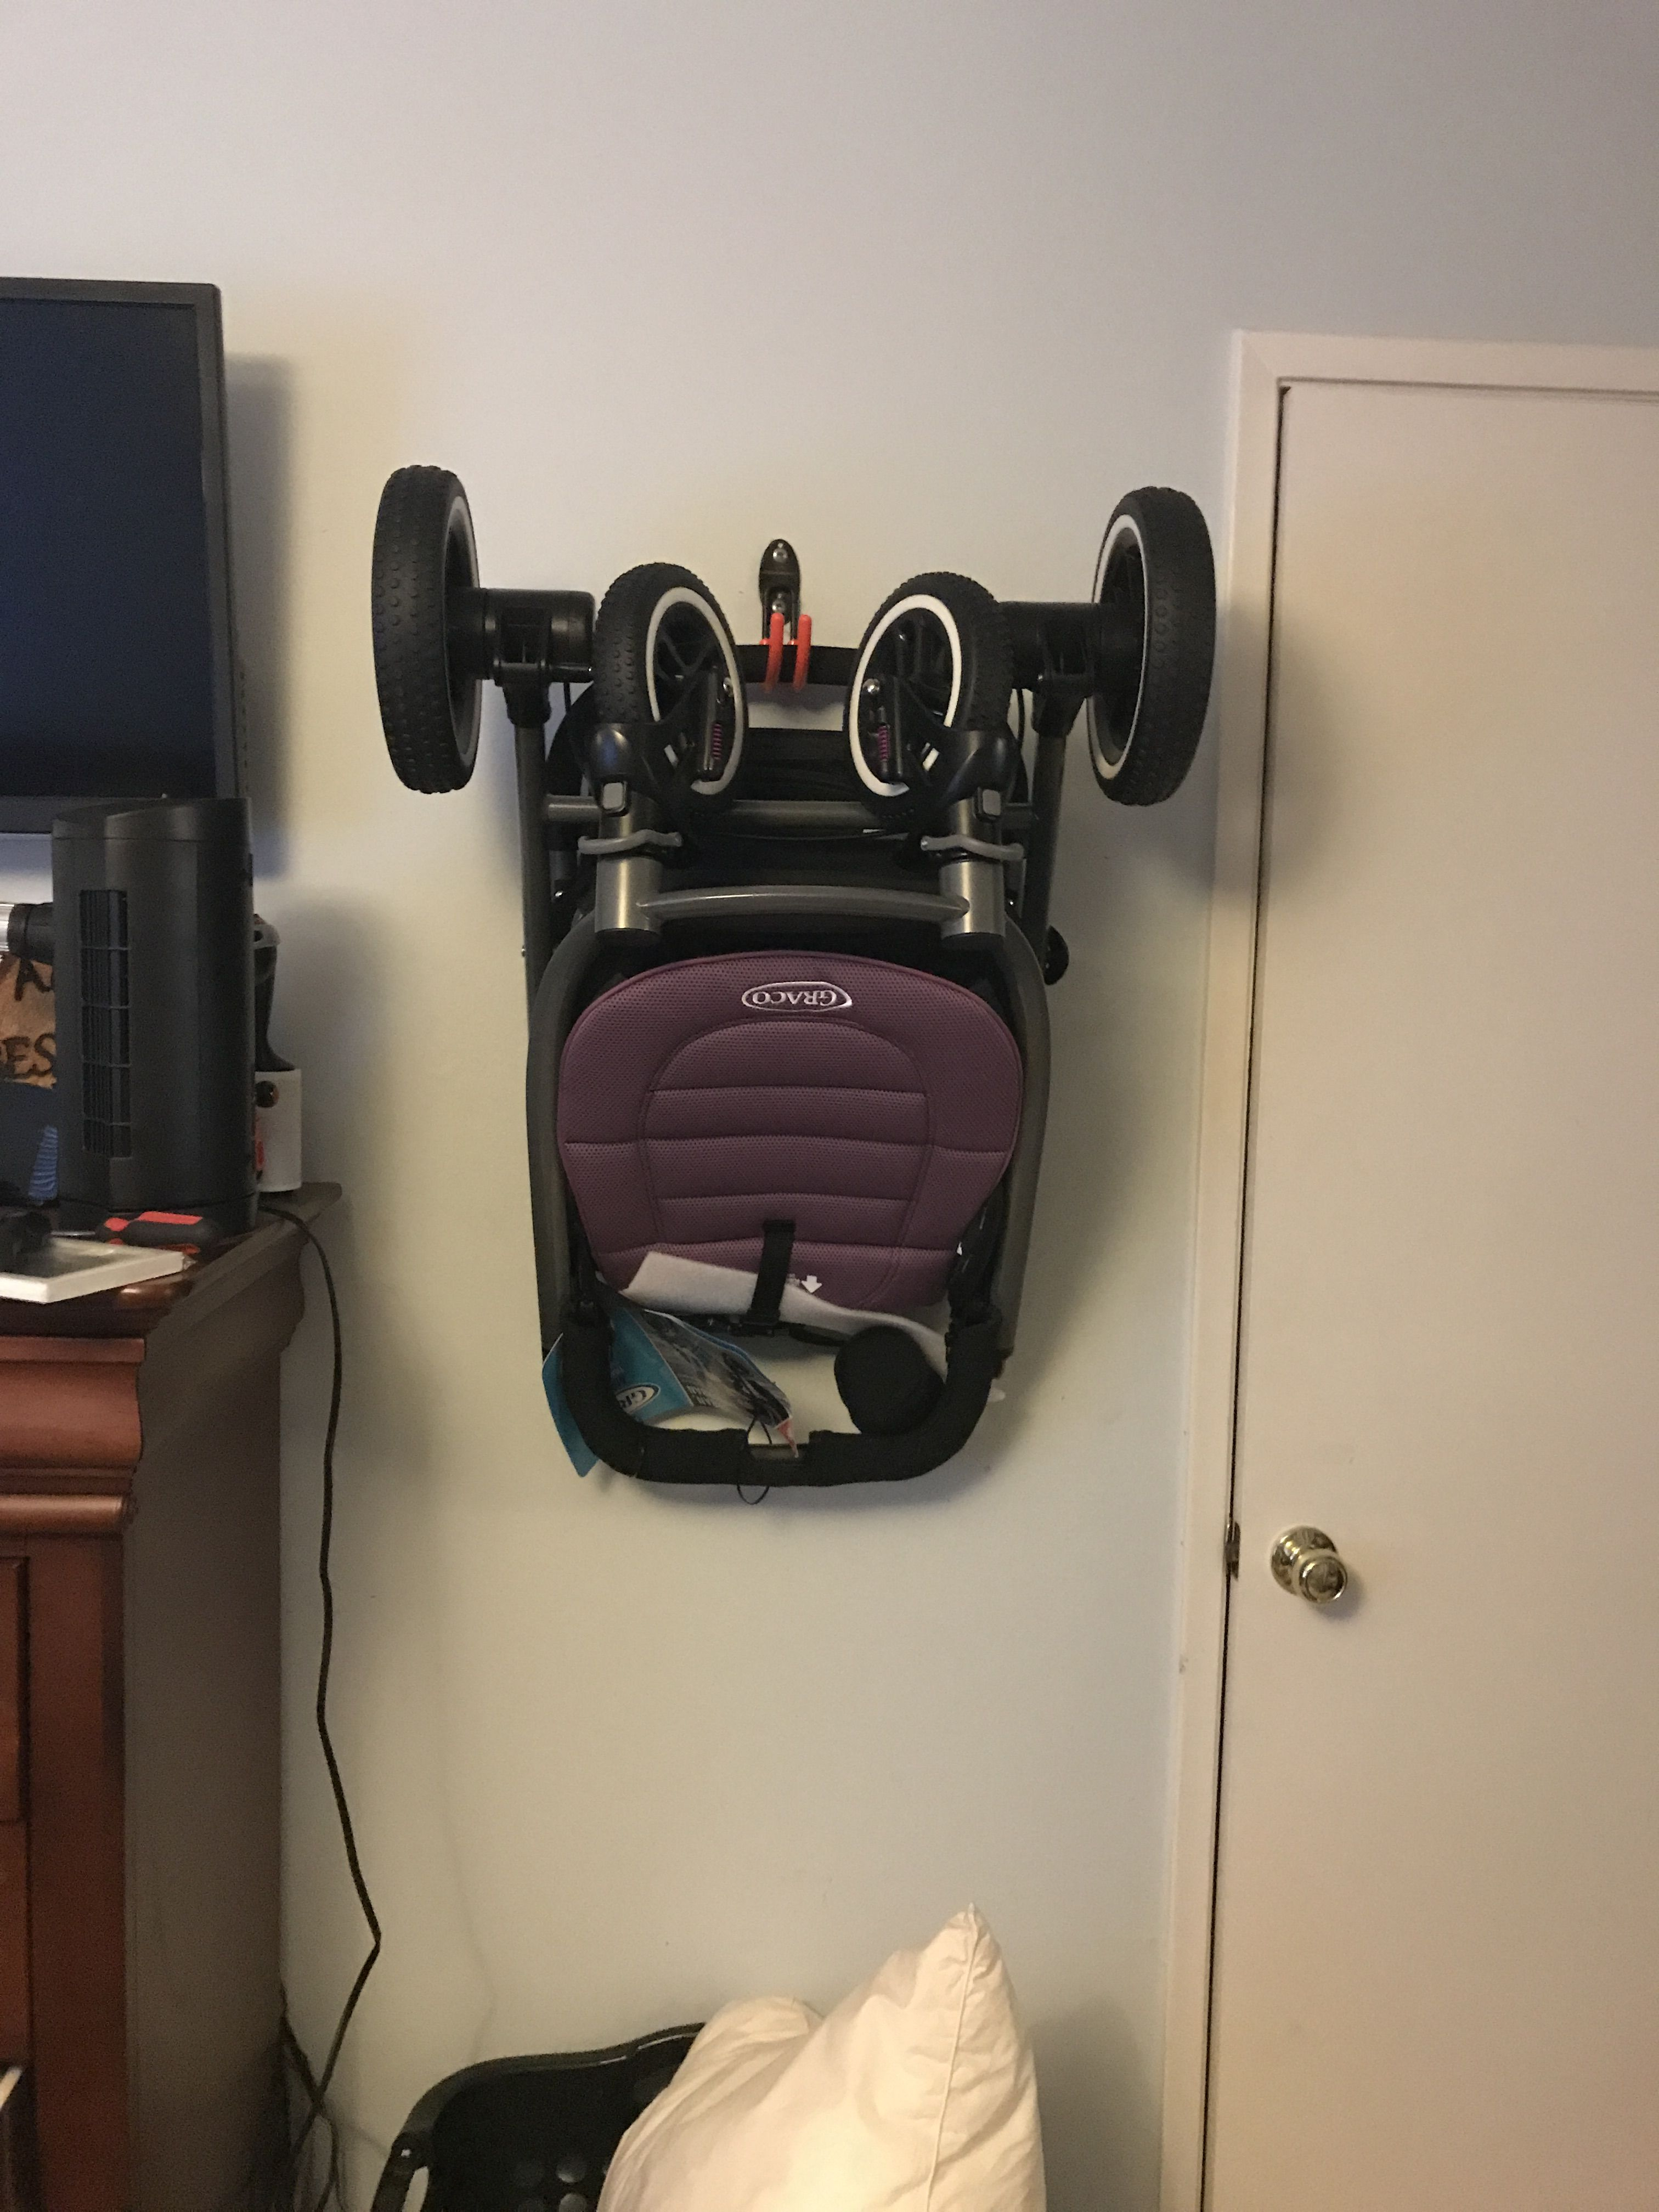 Used a hook to hang my stroller on the wall while it's not